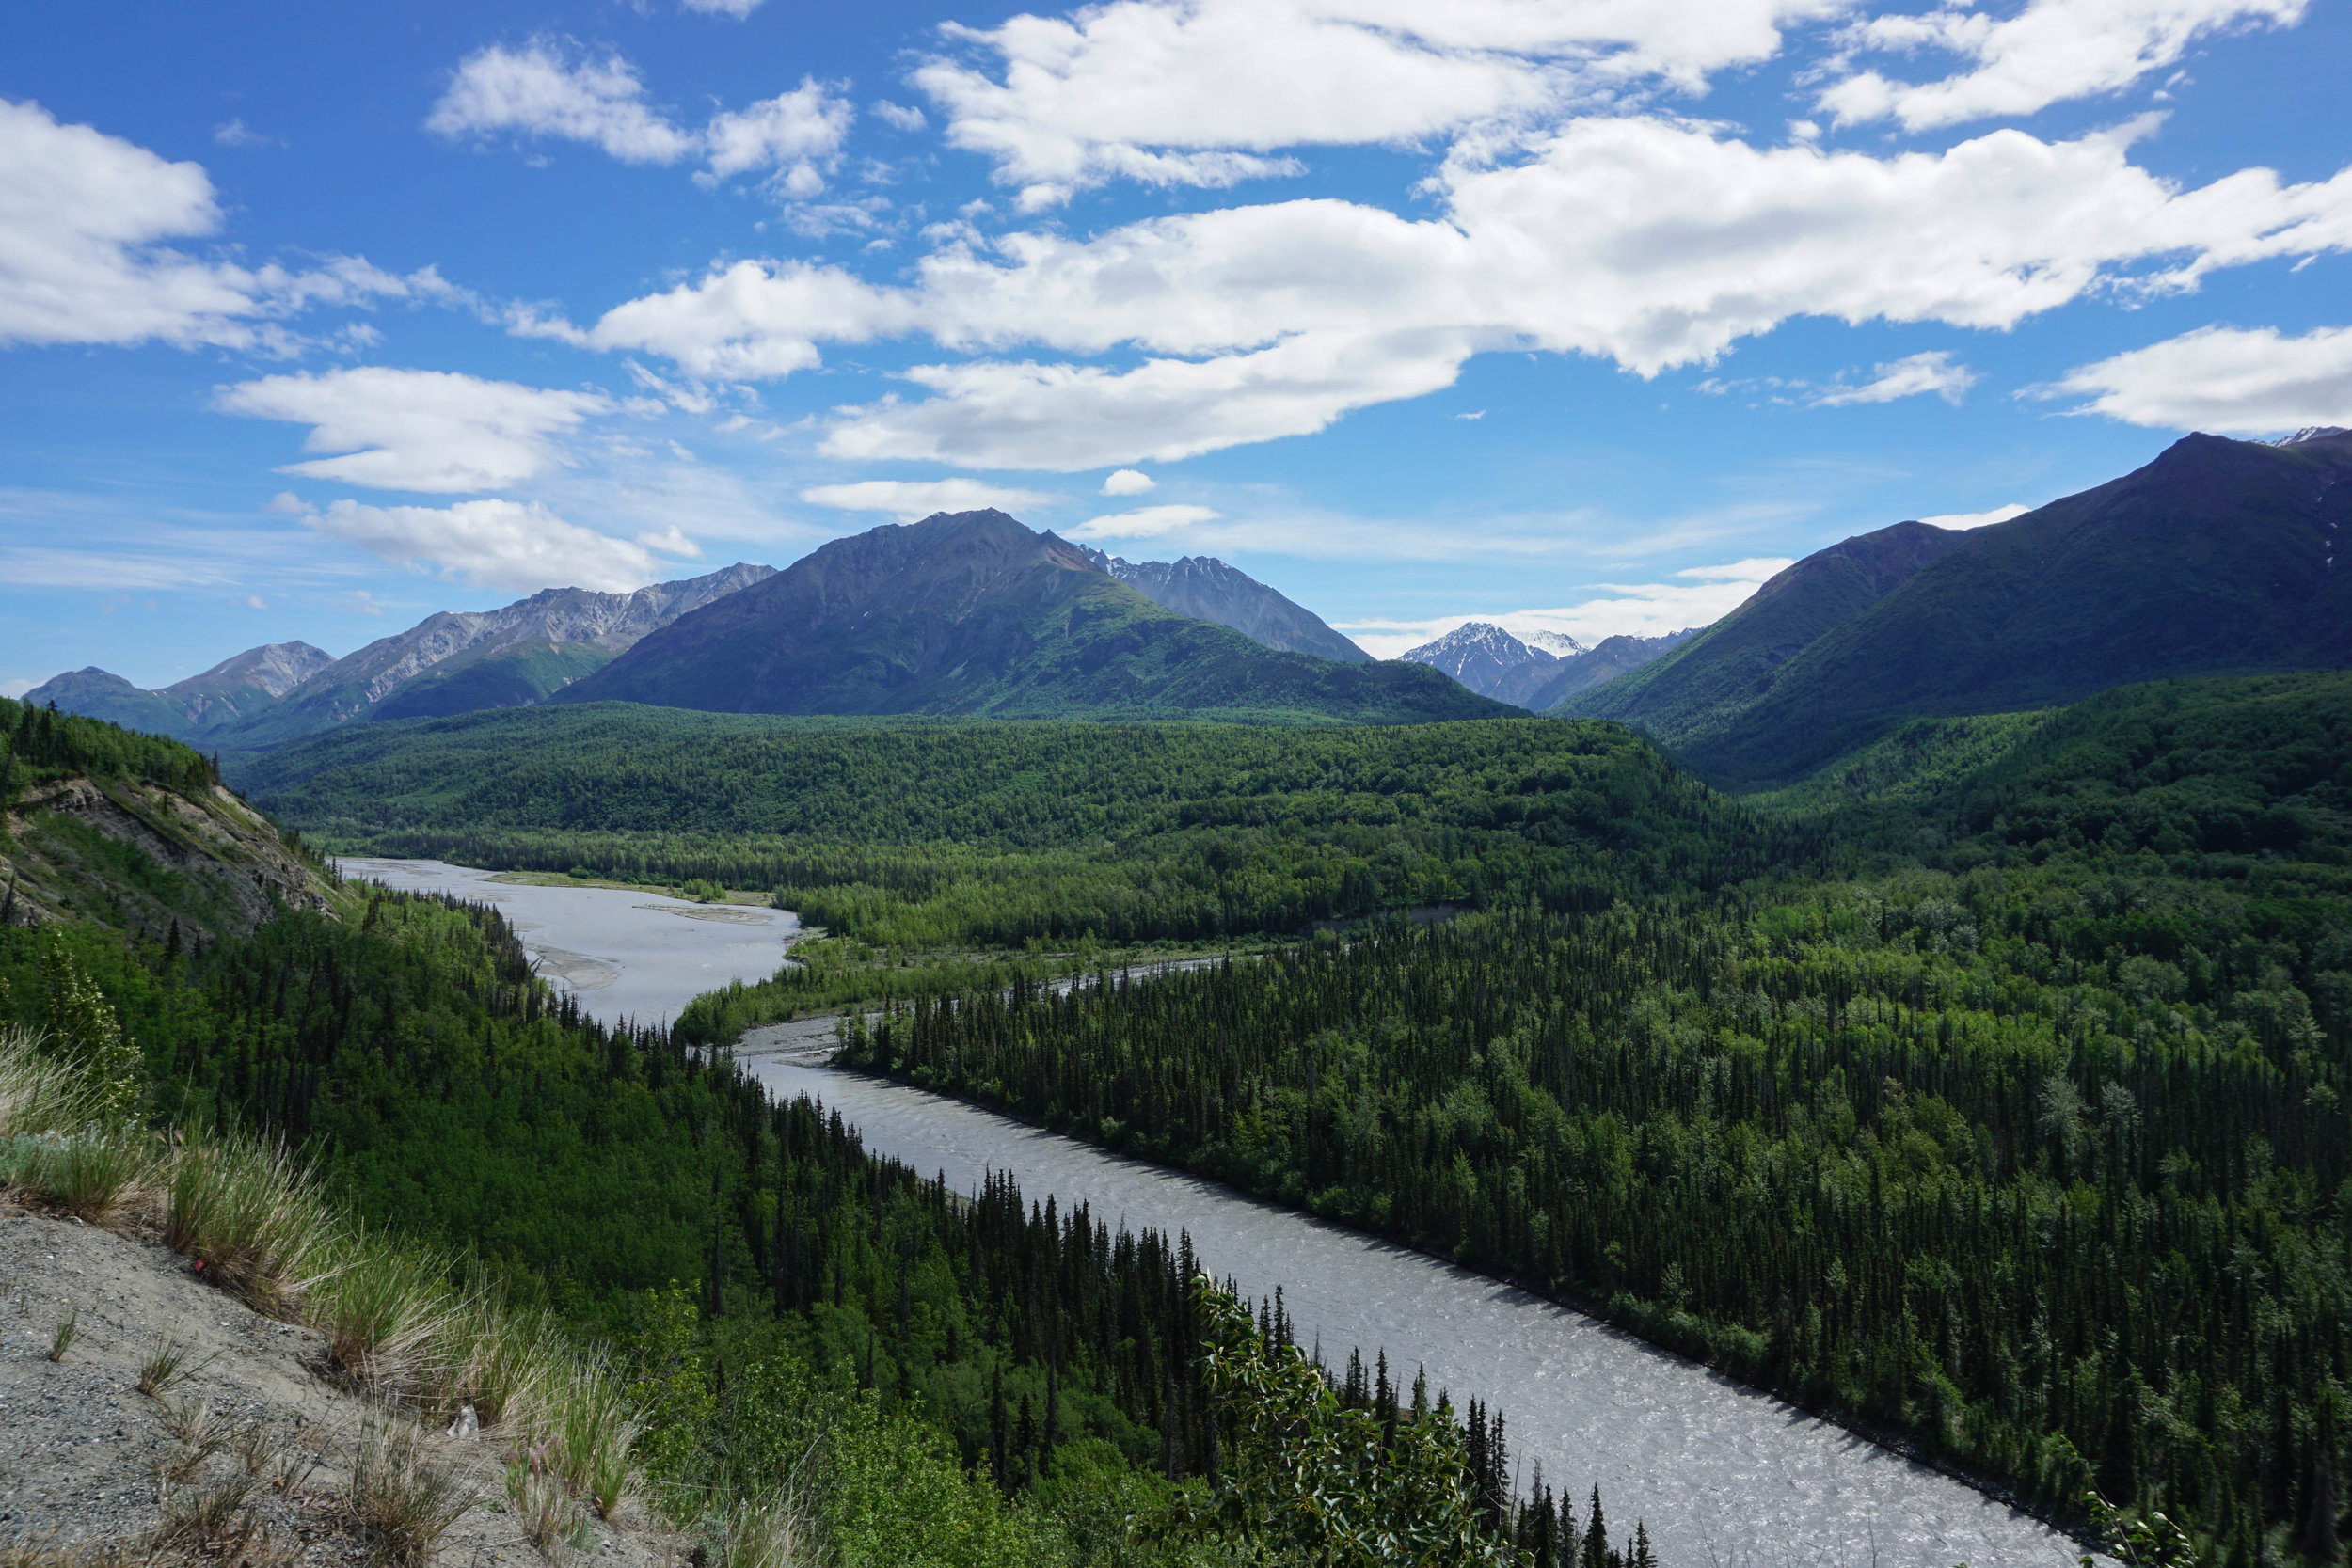 I took this on my way to see Matanuska Glacier.